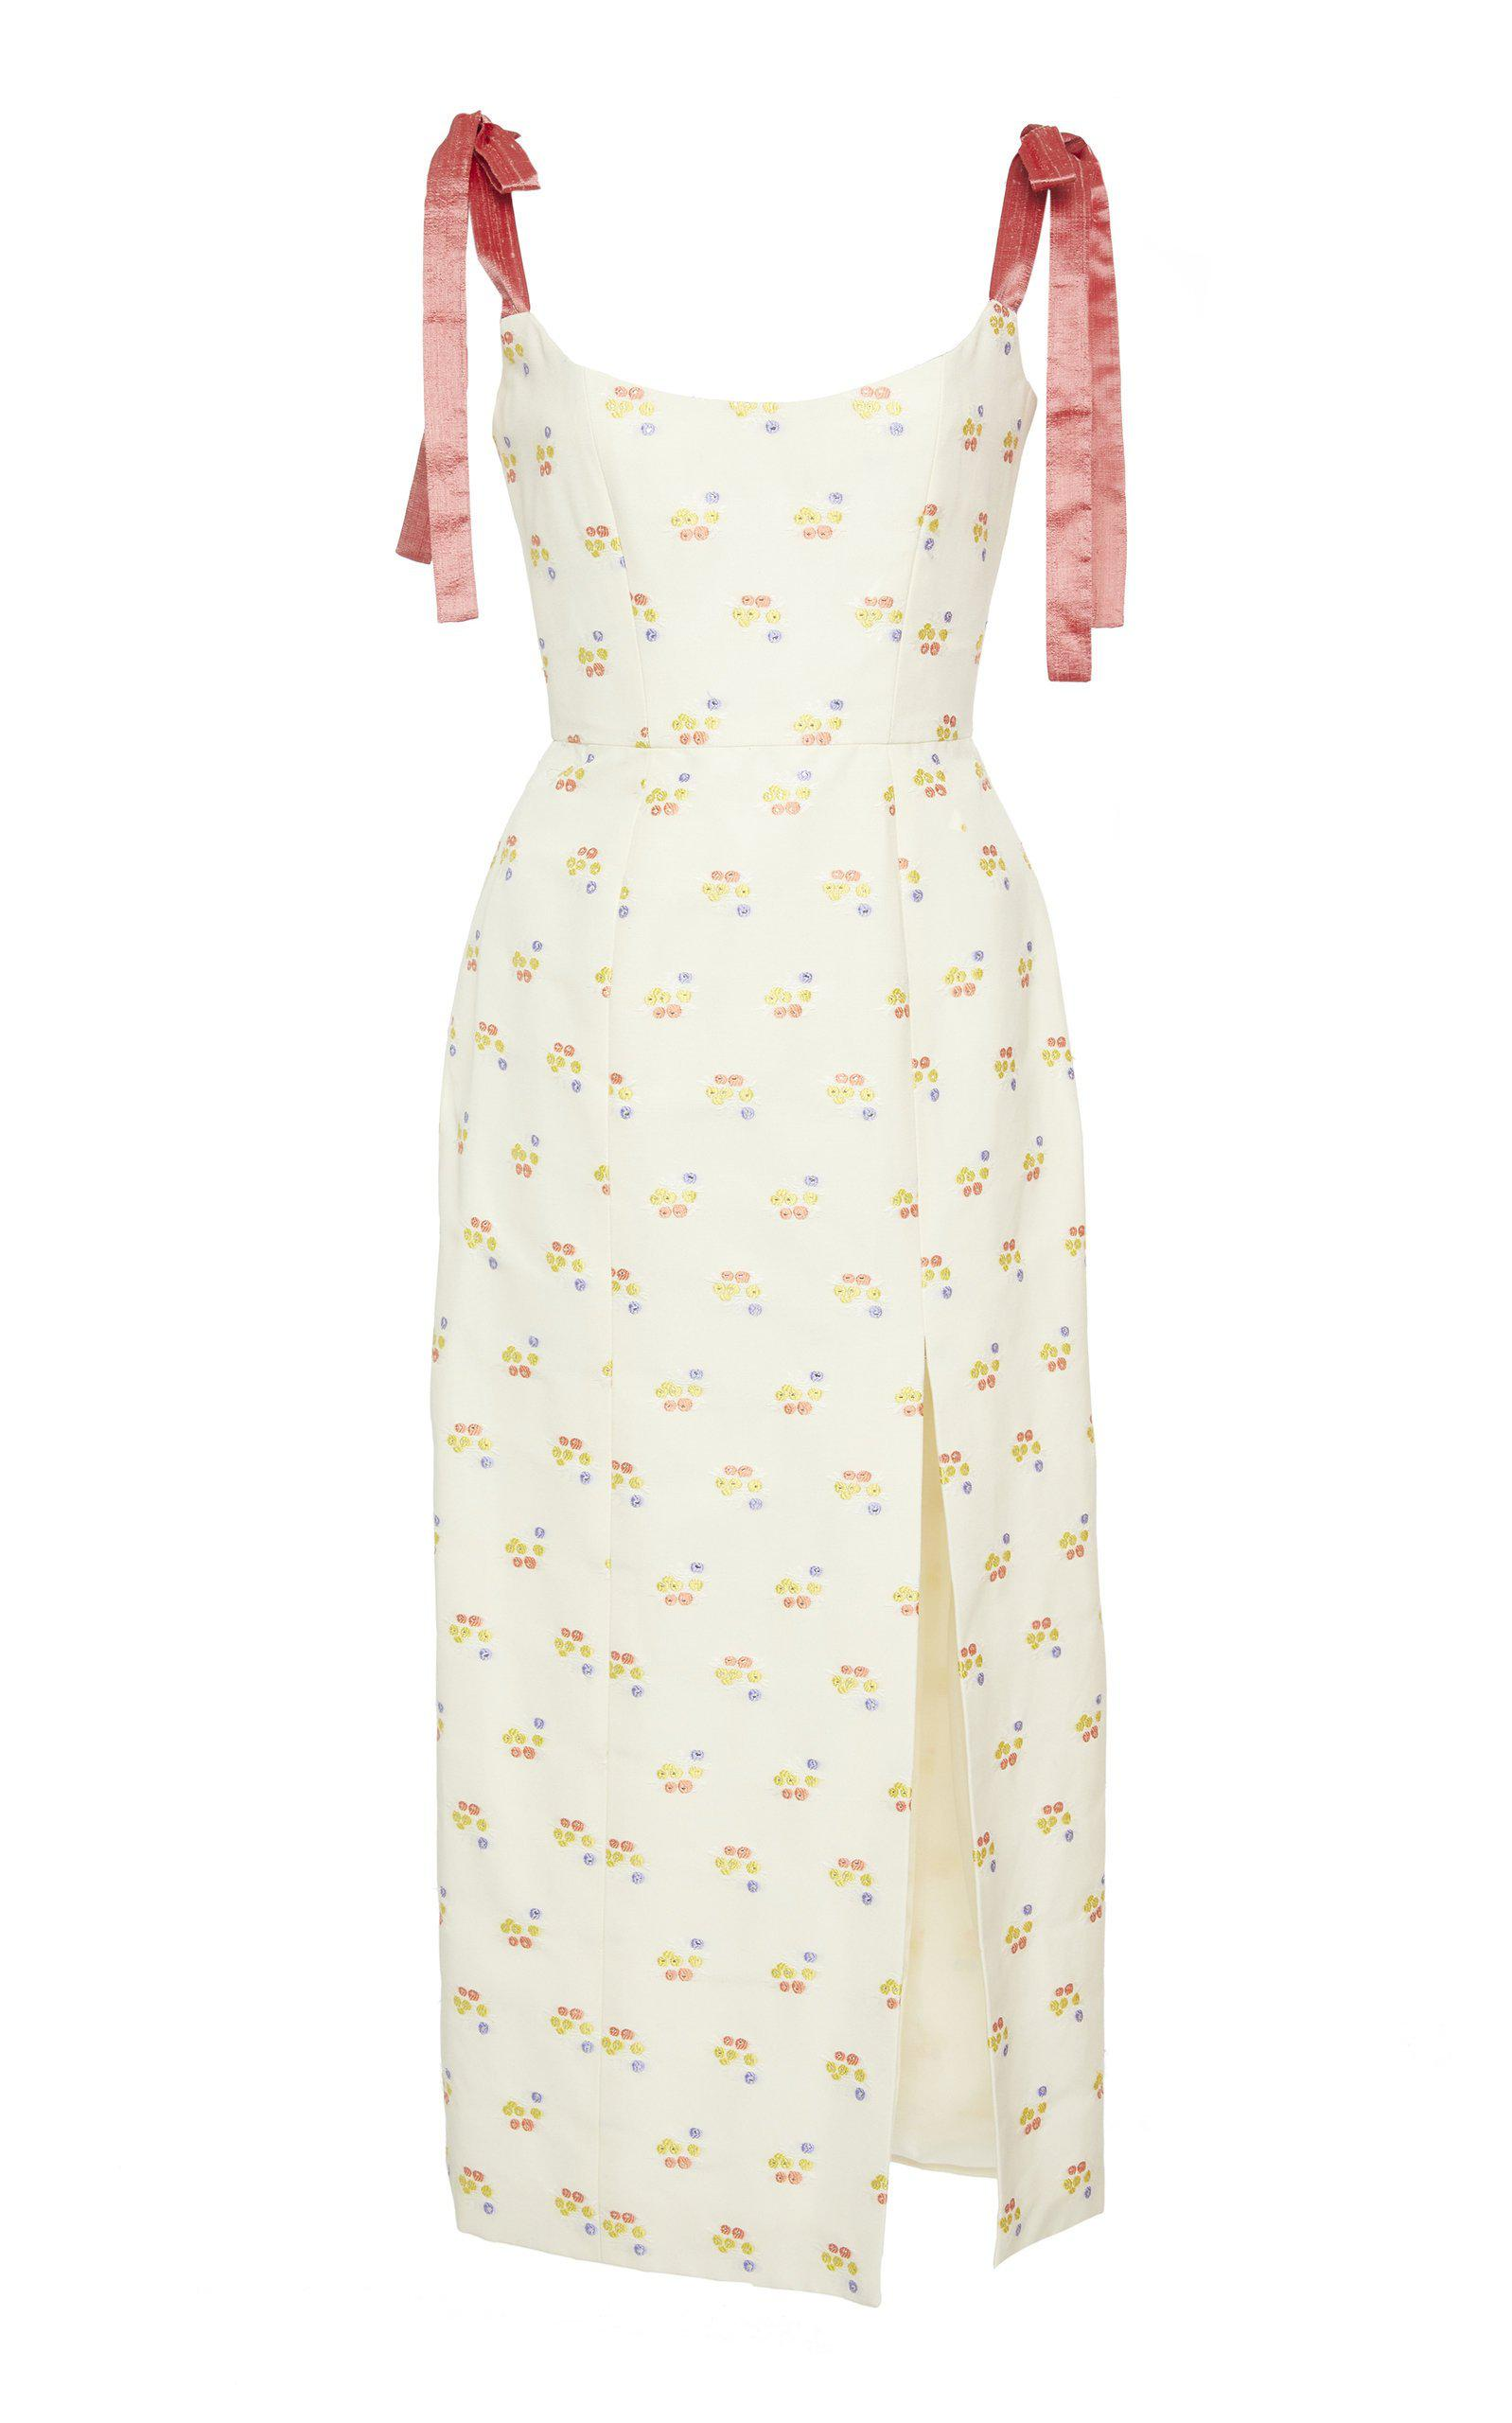 Darcy Floral Embroidered Dress 1